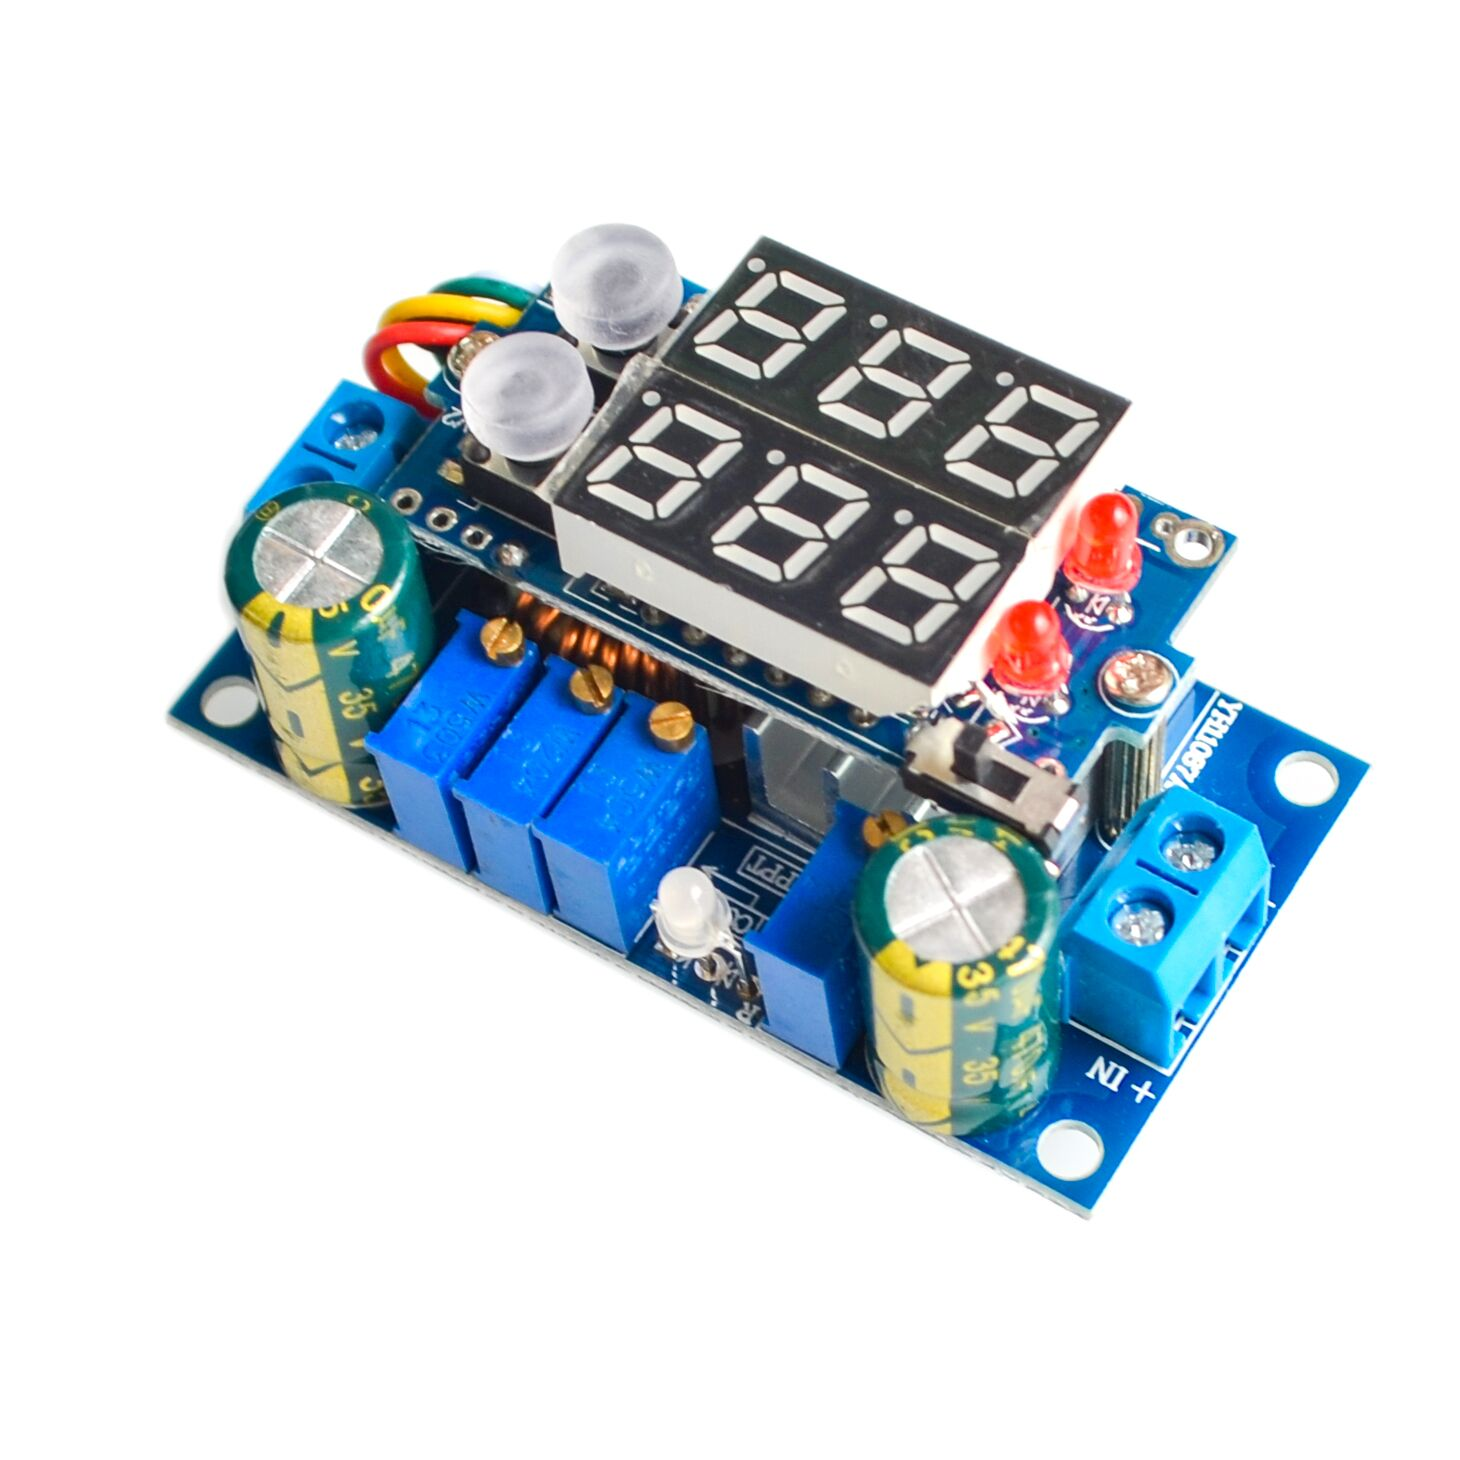 5a Mppt Solar Panel Controller Dc Step Down Cc Cv Charging Module Battery Charger Circuit Simulator Homemade Display Led